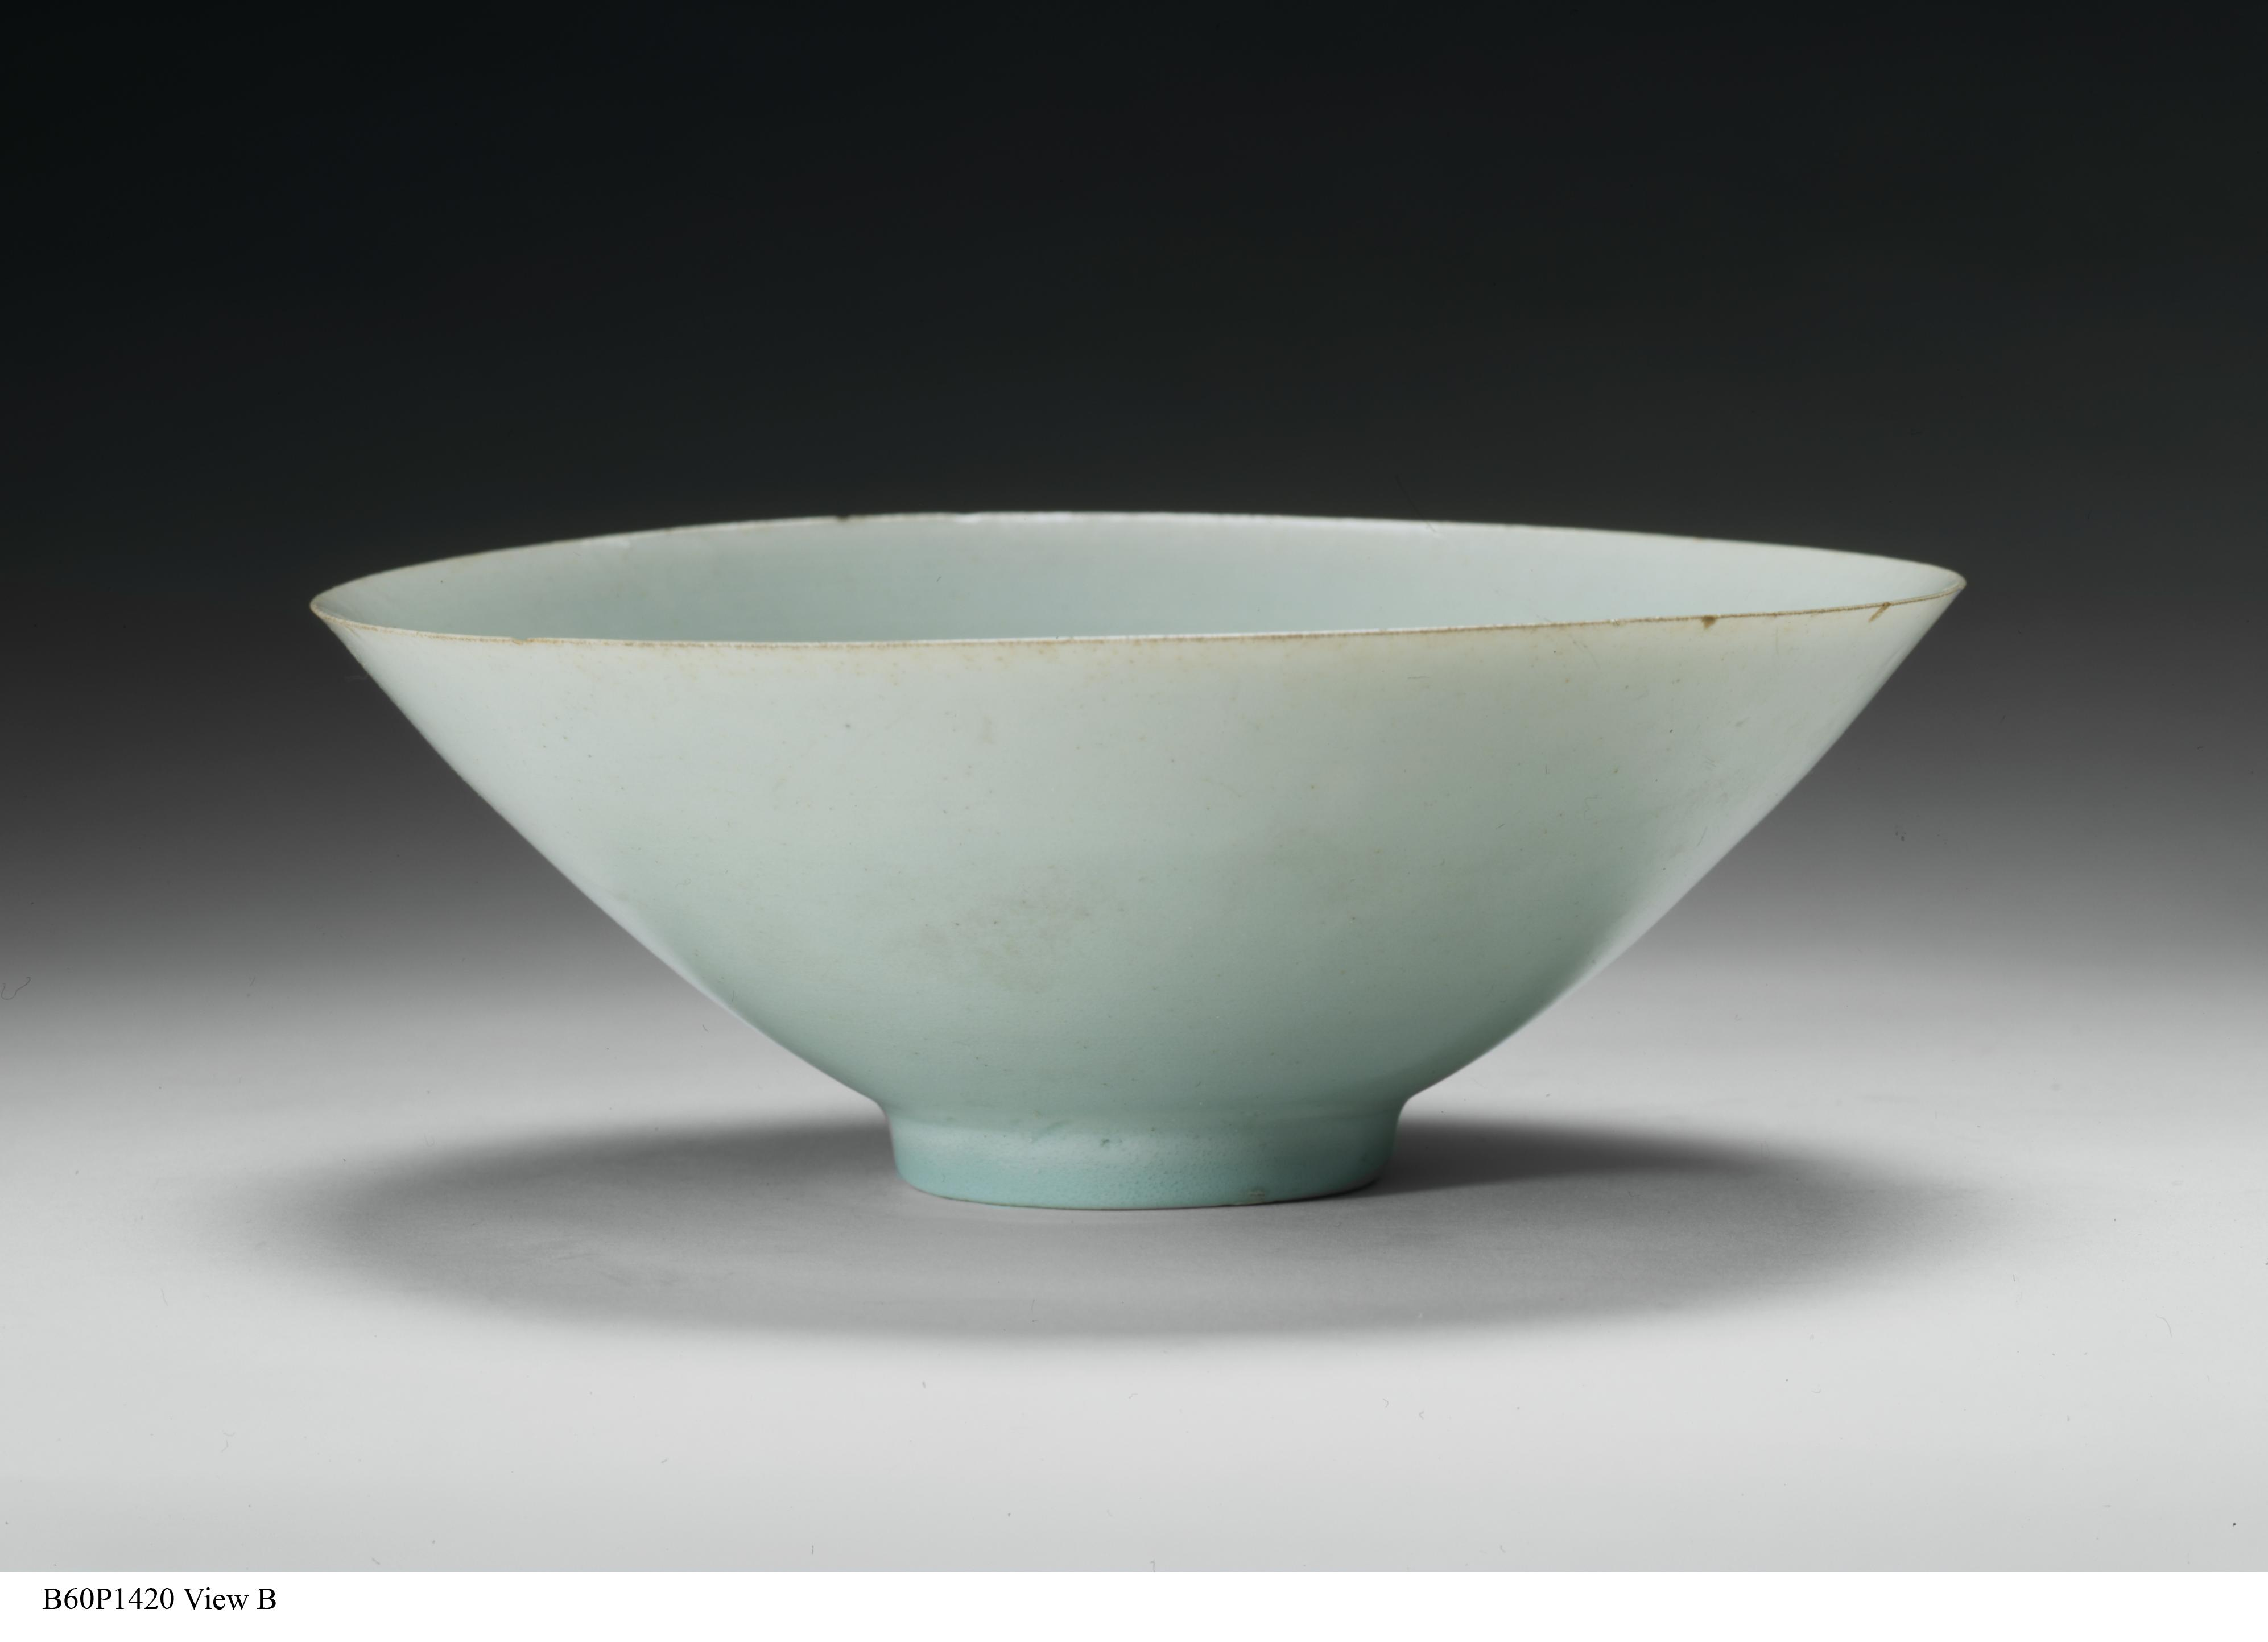 Tea bowl, Qingbai ware. China, Northern Song dynasty, 1050-1100. Porcelain, blue-green glaze. On loan, Asian Art Museum, the Avery Brundage Collection. Photo courtesy of Fowler Museum at UCLA